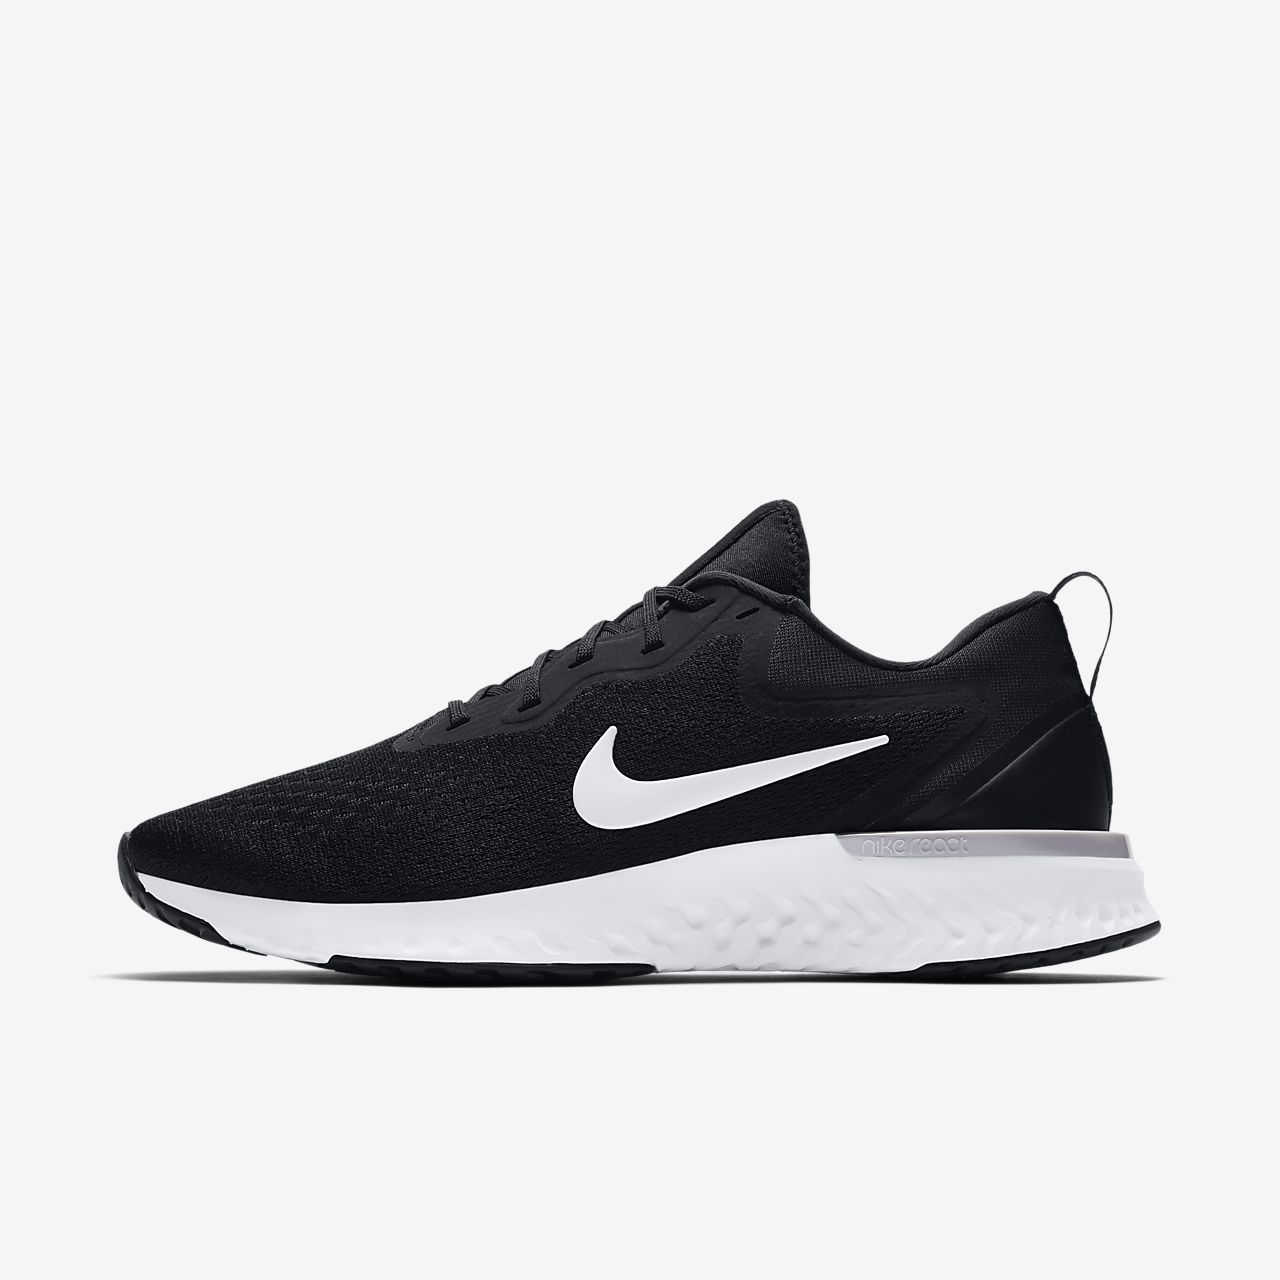 quality design db223 55179 Nike Odyssey React